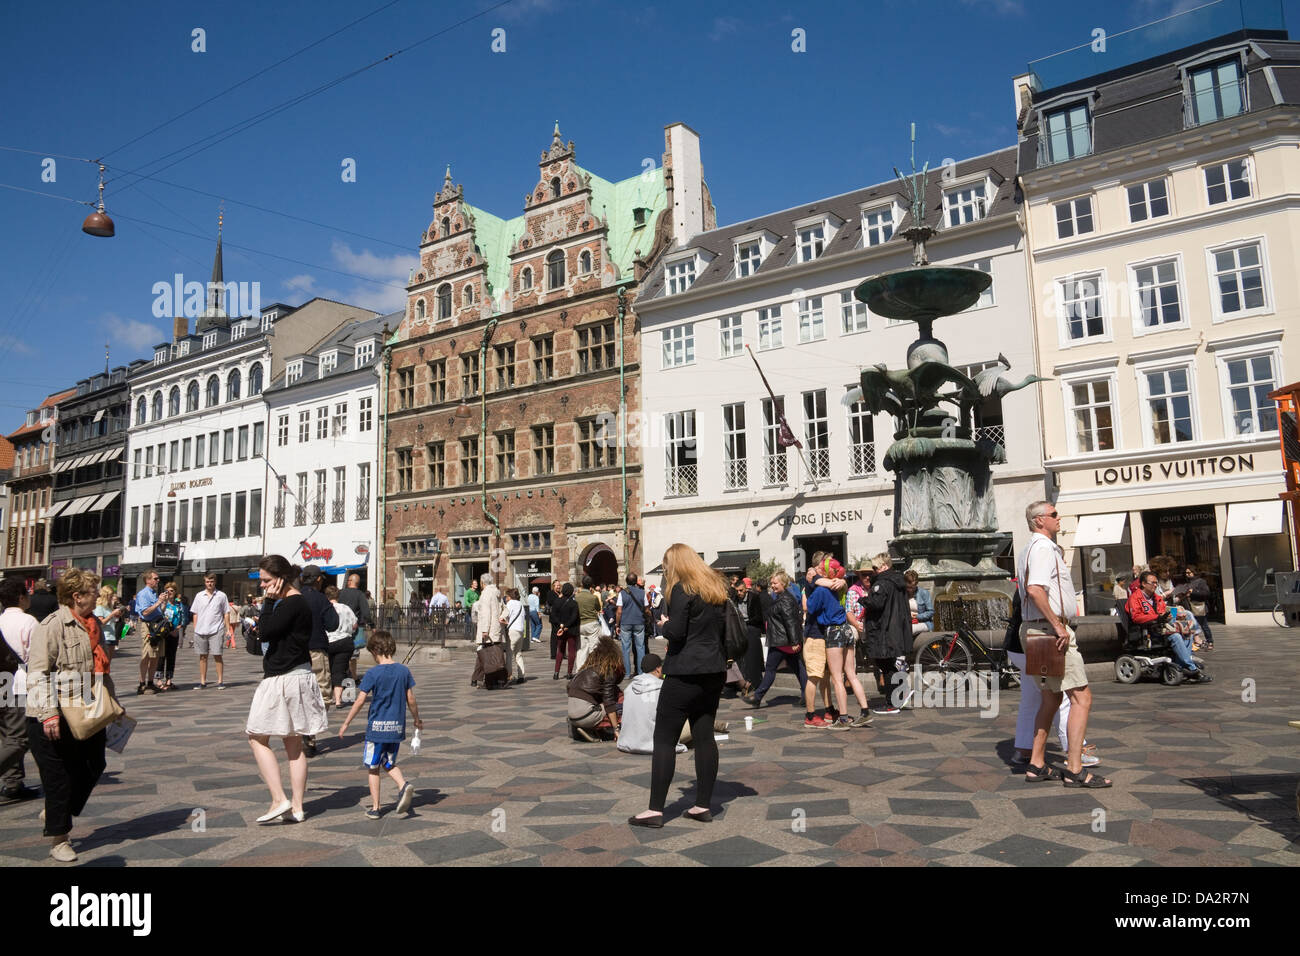 Copenhagen Denmark EU Stork Fountain dominates the very busy Hojbro Plads the Central Square - Stock Image